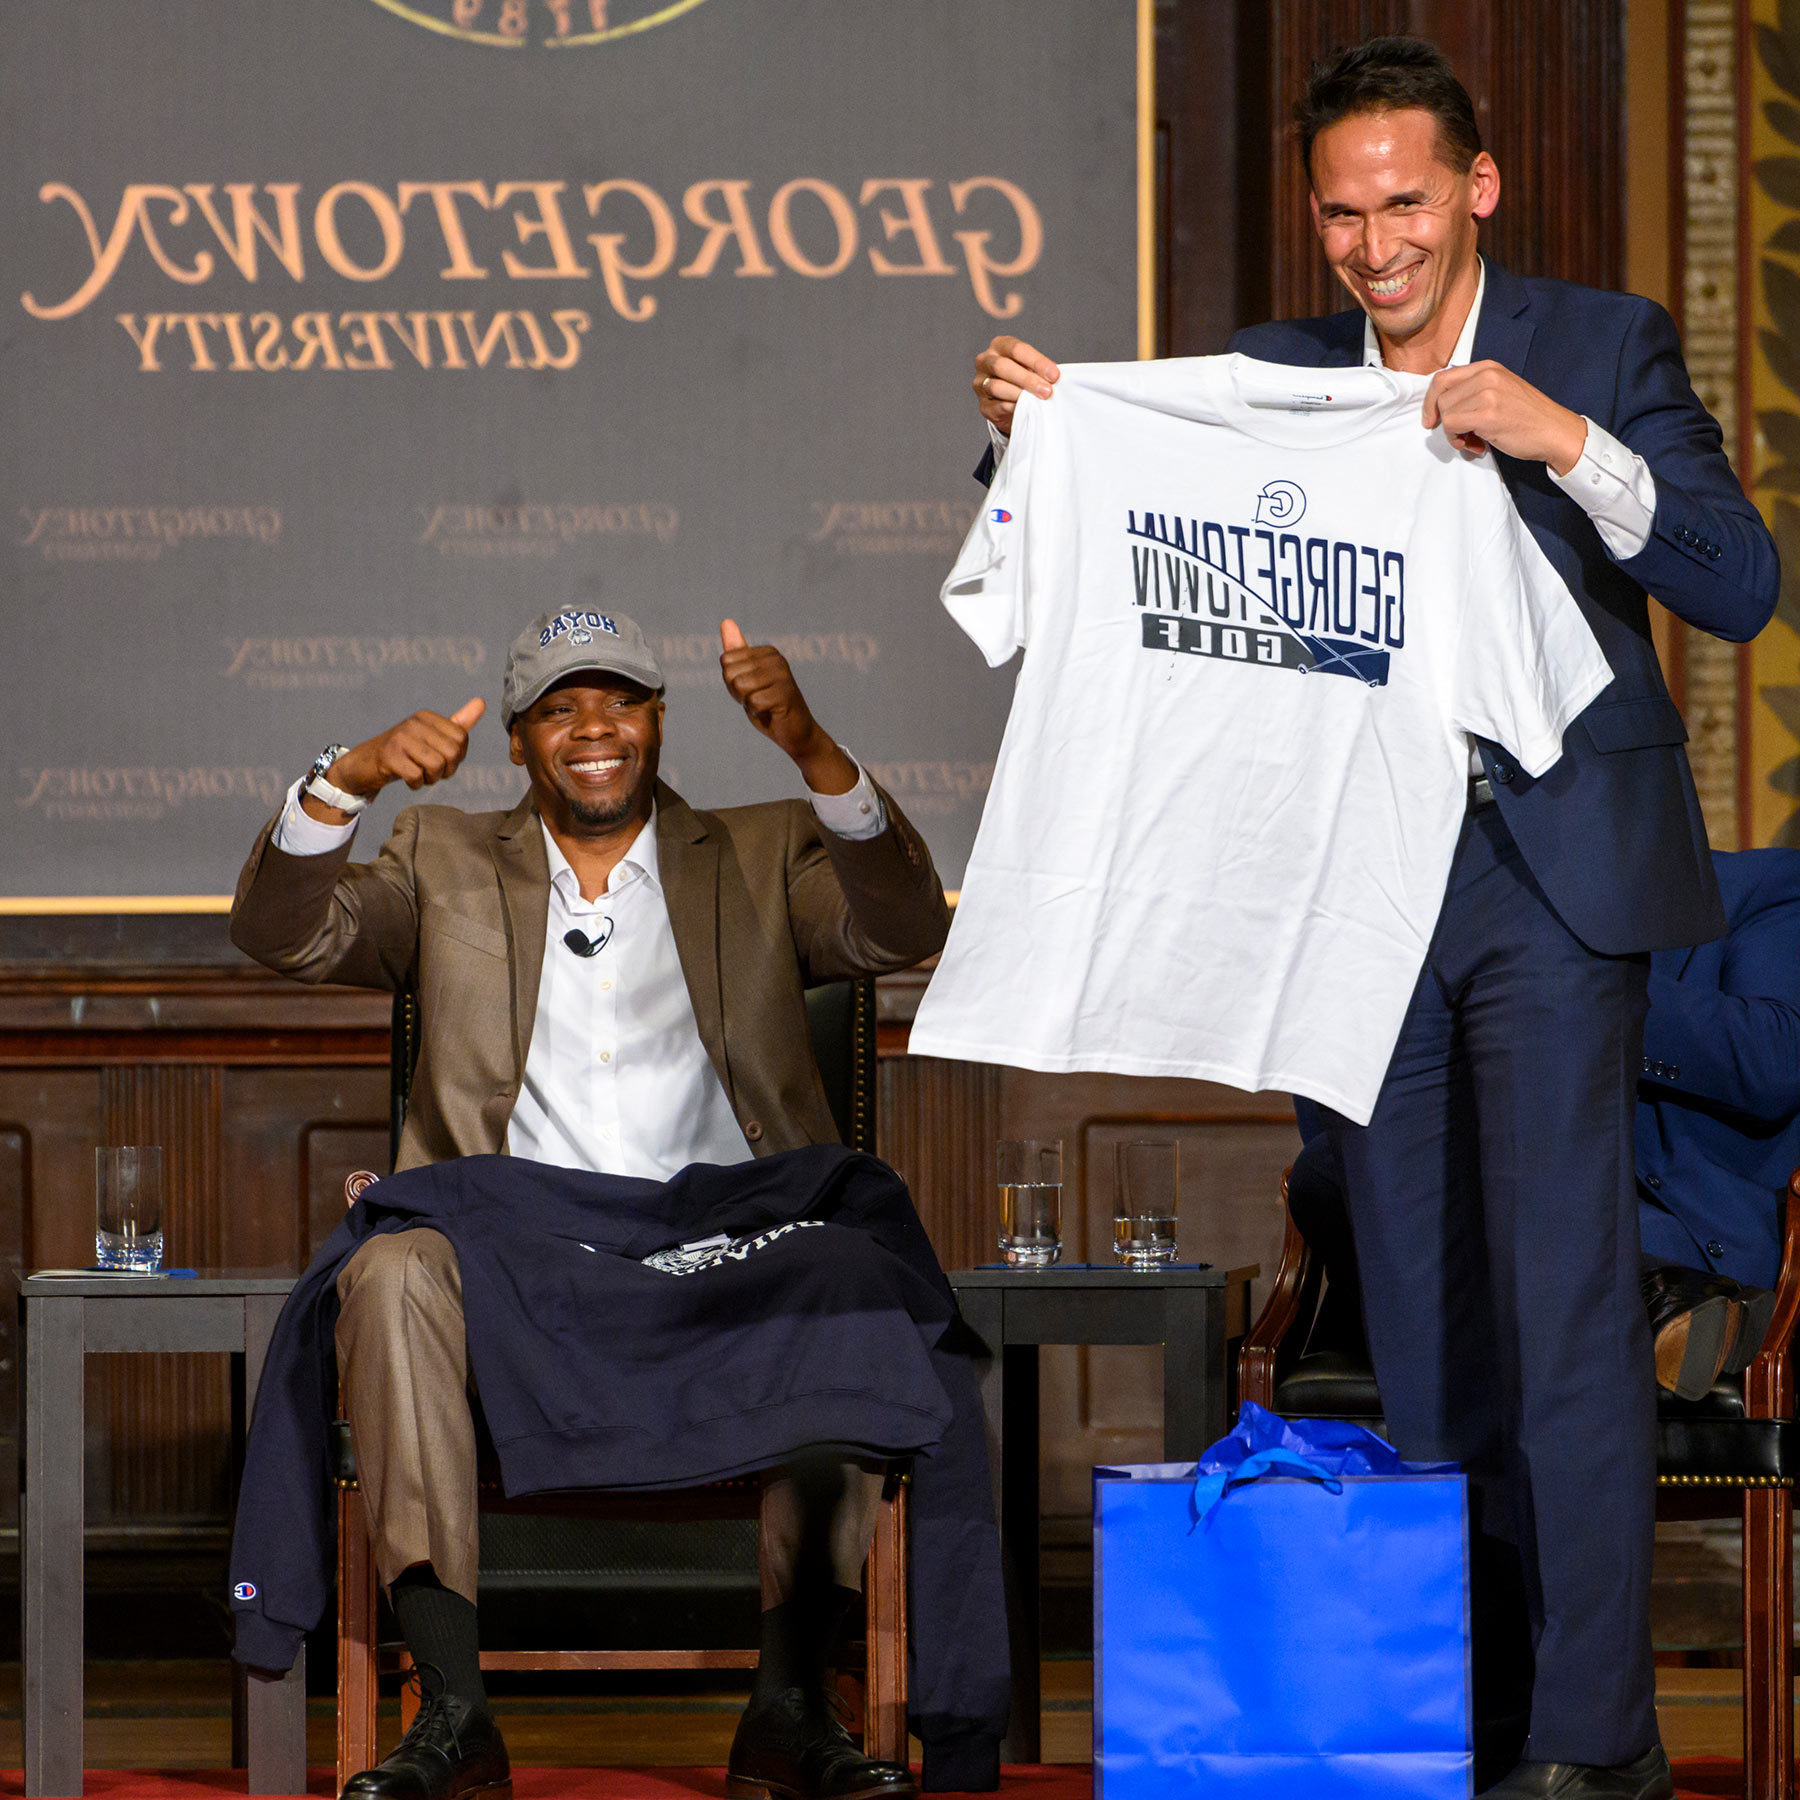 Professor Marc Howard stands on stage in Gaston Hall, presenting a 乔治城大学 golf t-shirt to Valentino Dixon.